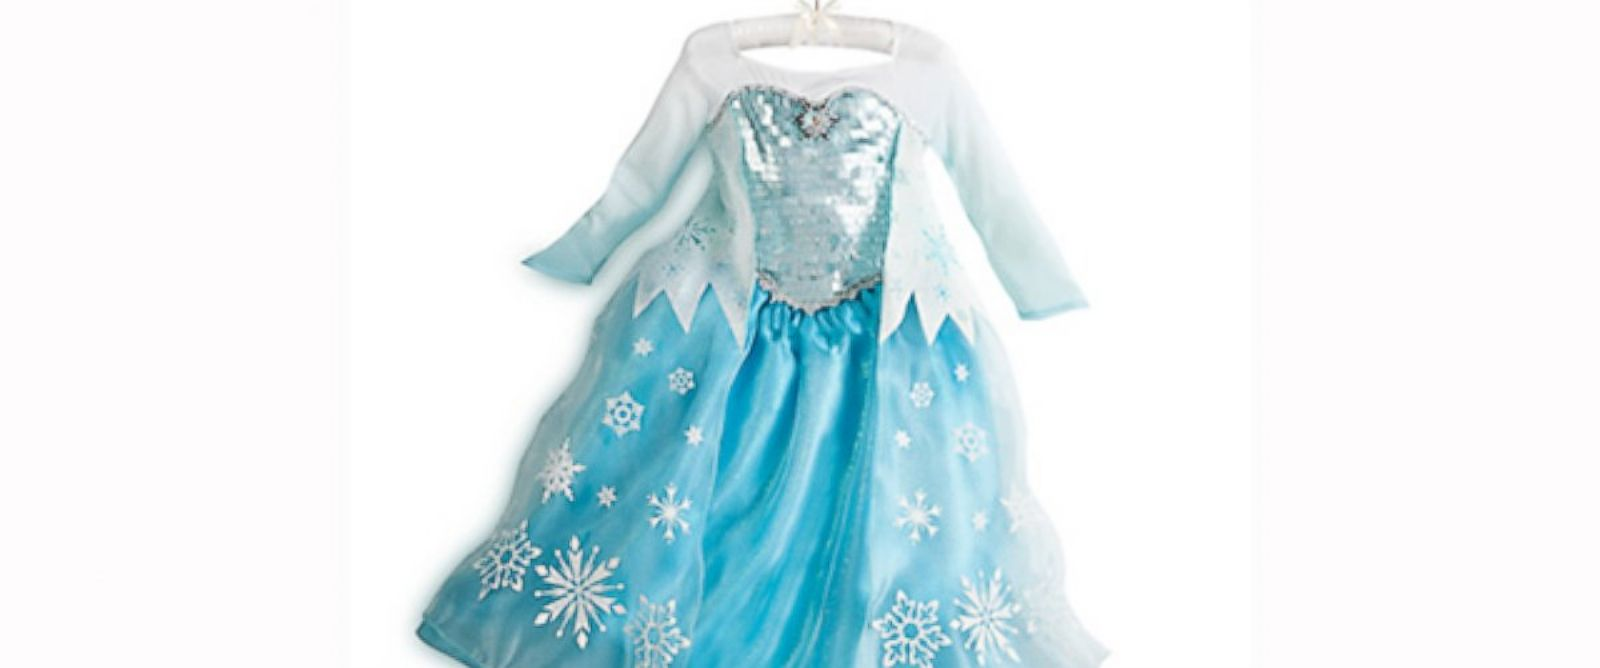 PHOTO: Disney Consumer Products announced that more than 3 million Disney Frozen Elsa and Anna role-play dresses have been sold at Disney Store and mass retailers in North America alone in less than a year.